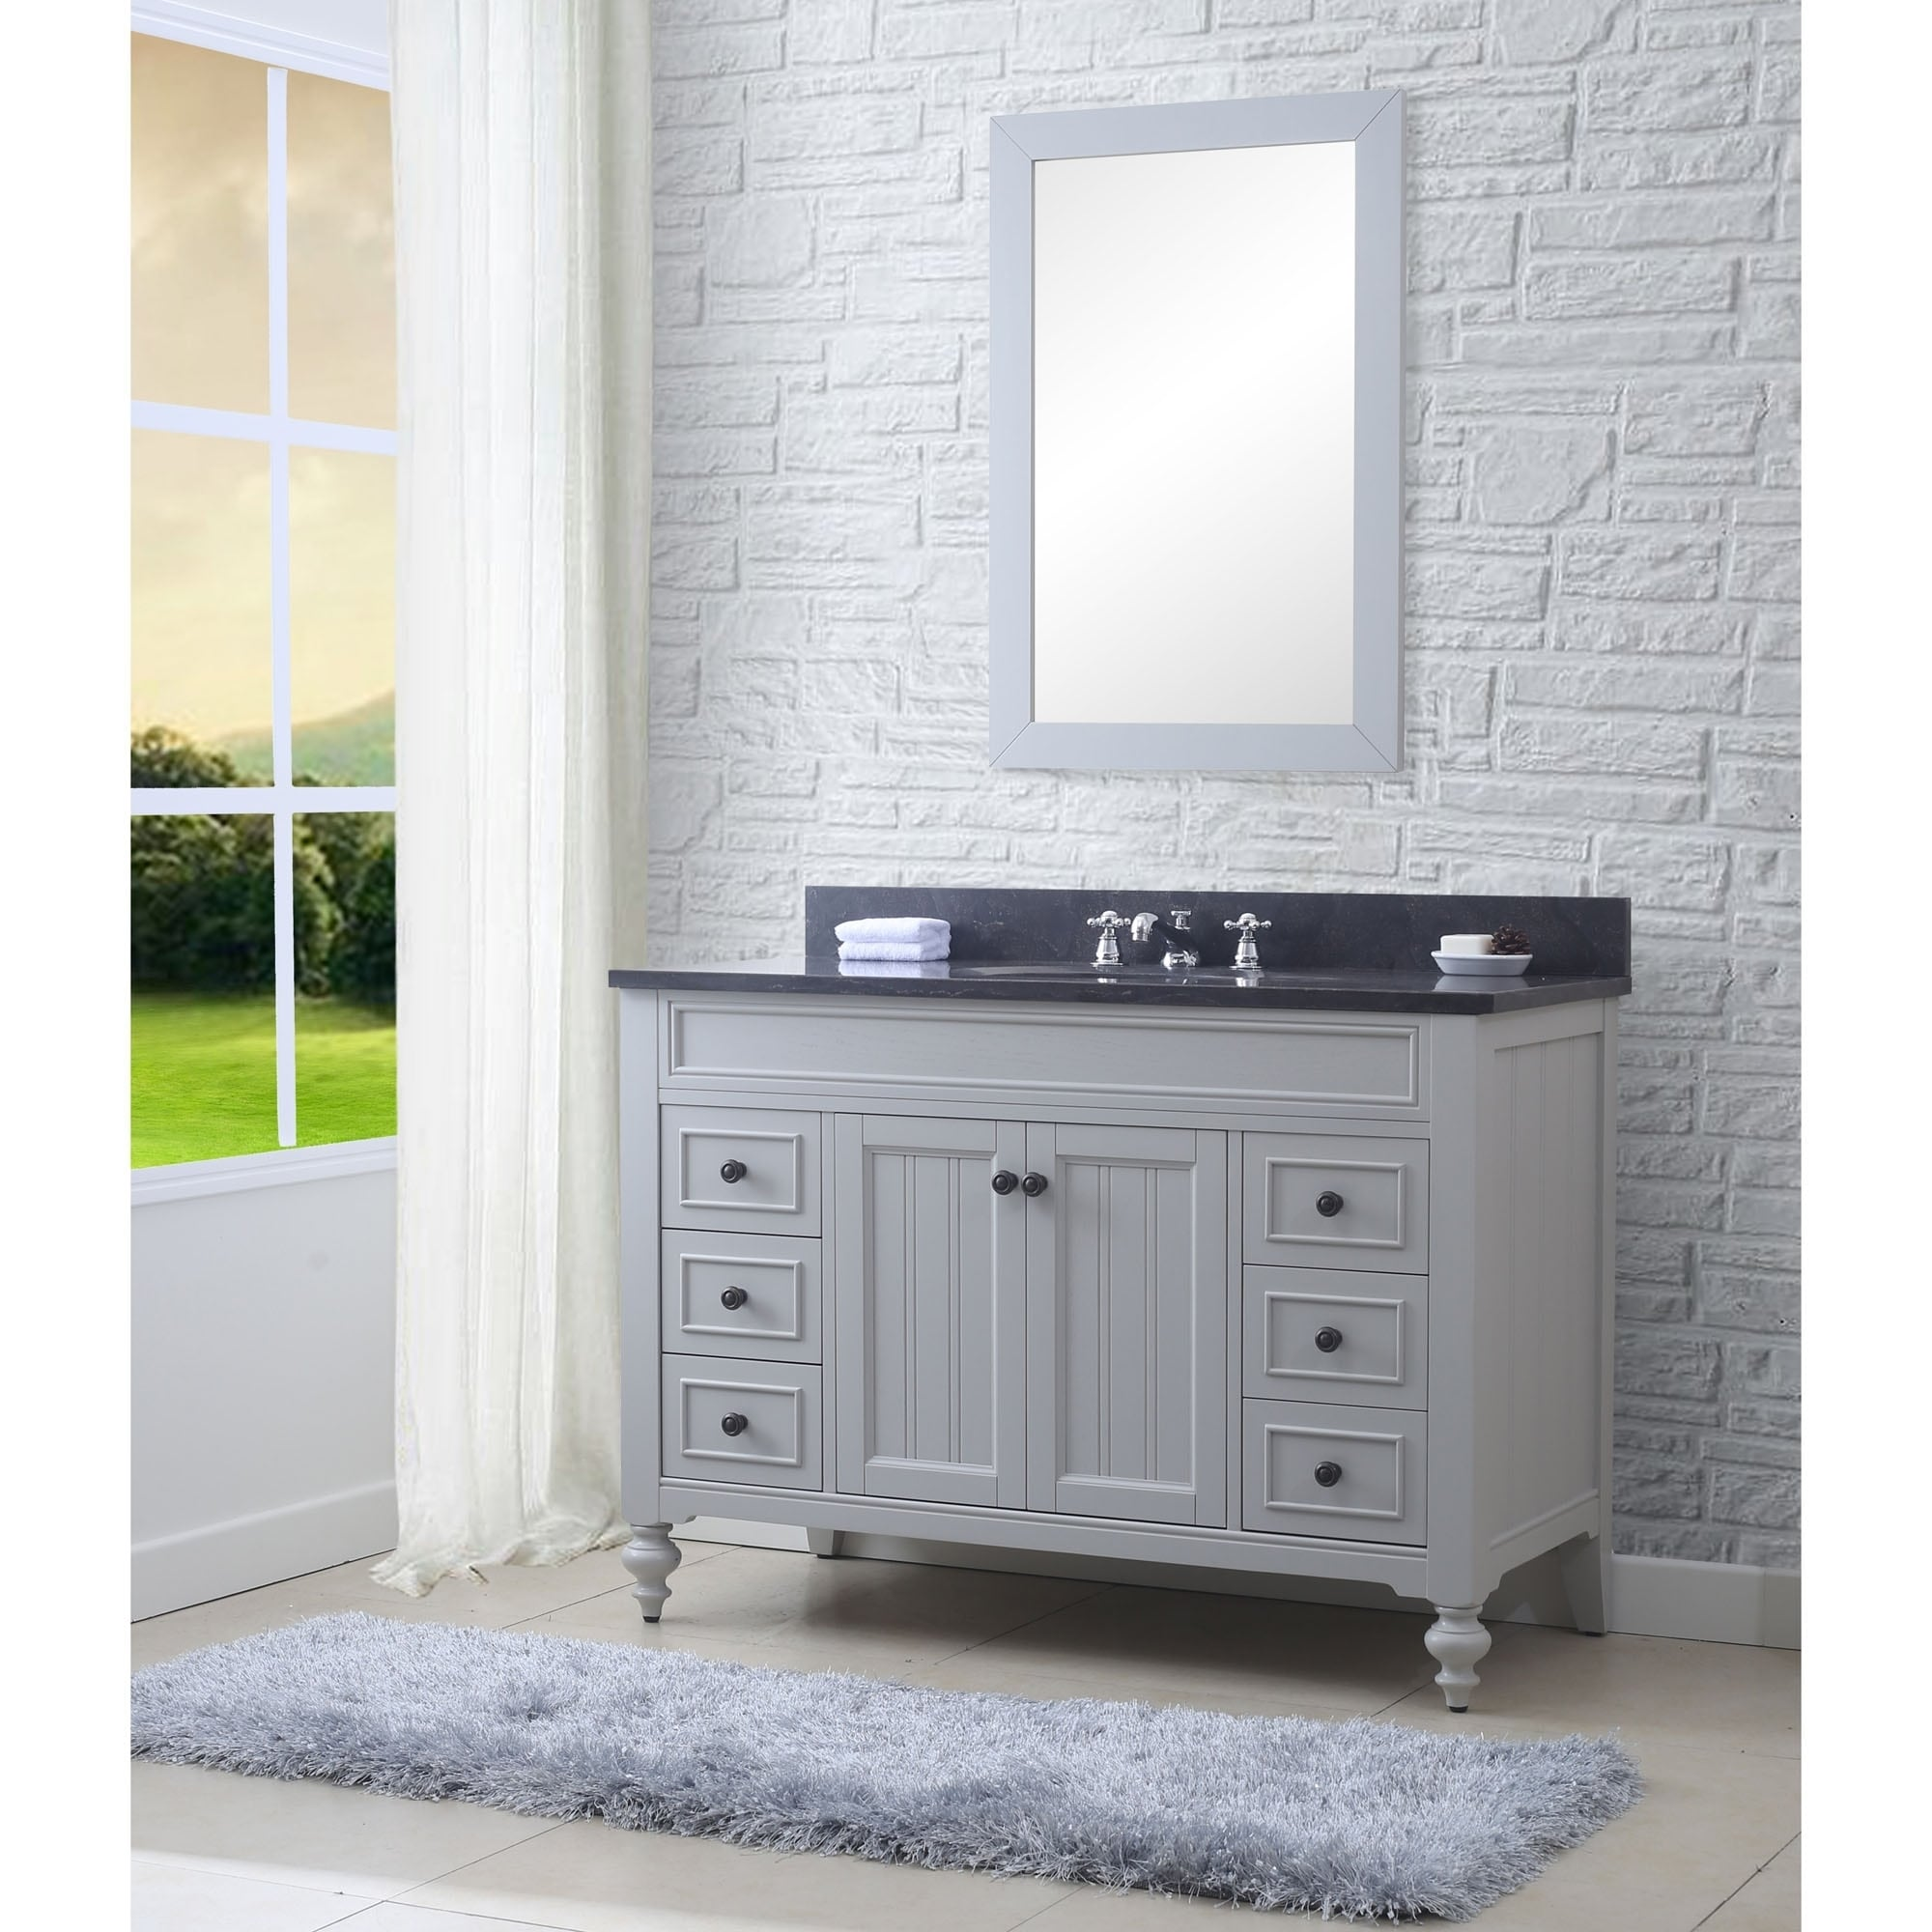 48 Inch Earl Grey Single Sink Bathroom Vanity From The Potenza Collection (vanity with 1 mirror)